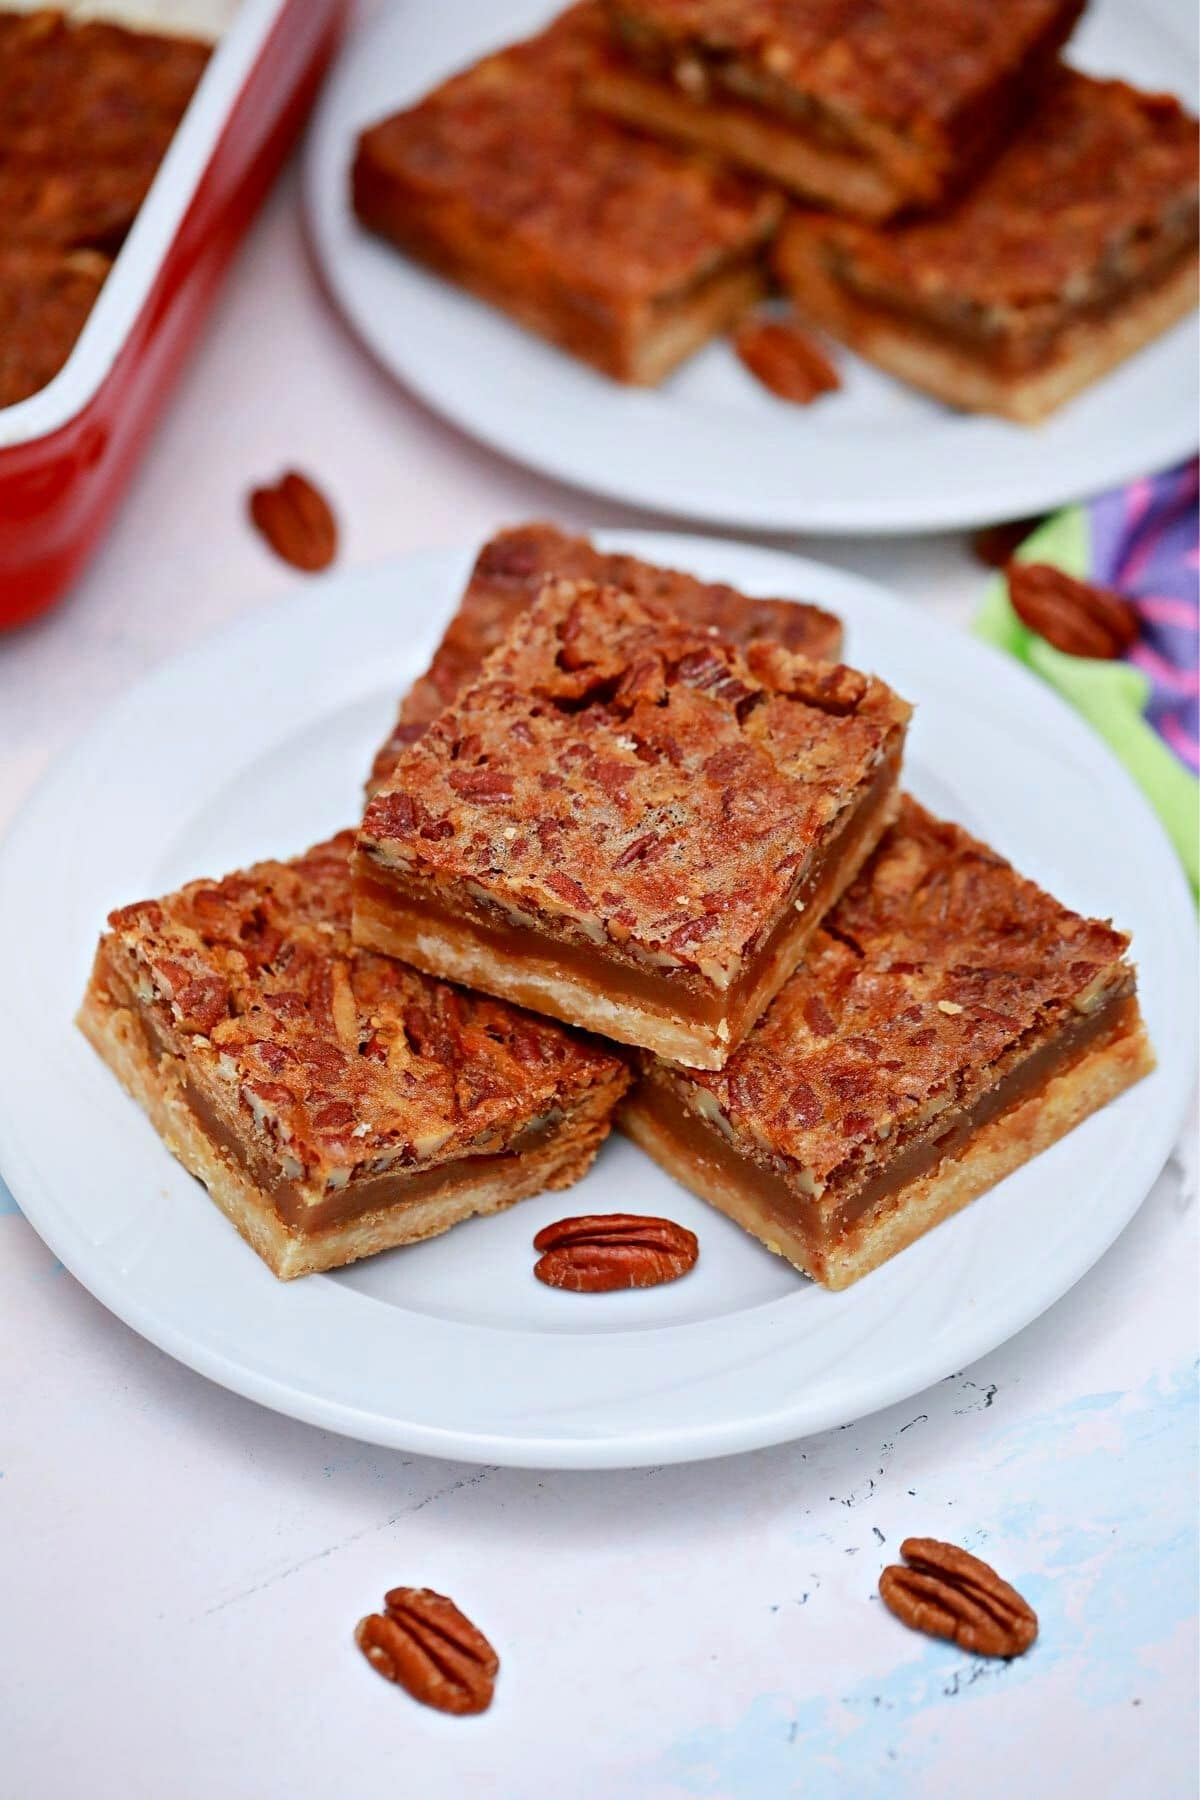 Two white saucers of pecan pie bars on table by red baking dish